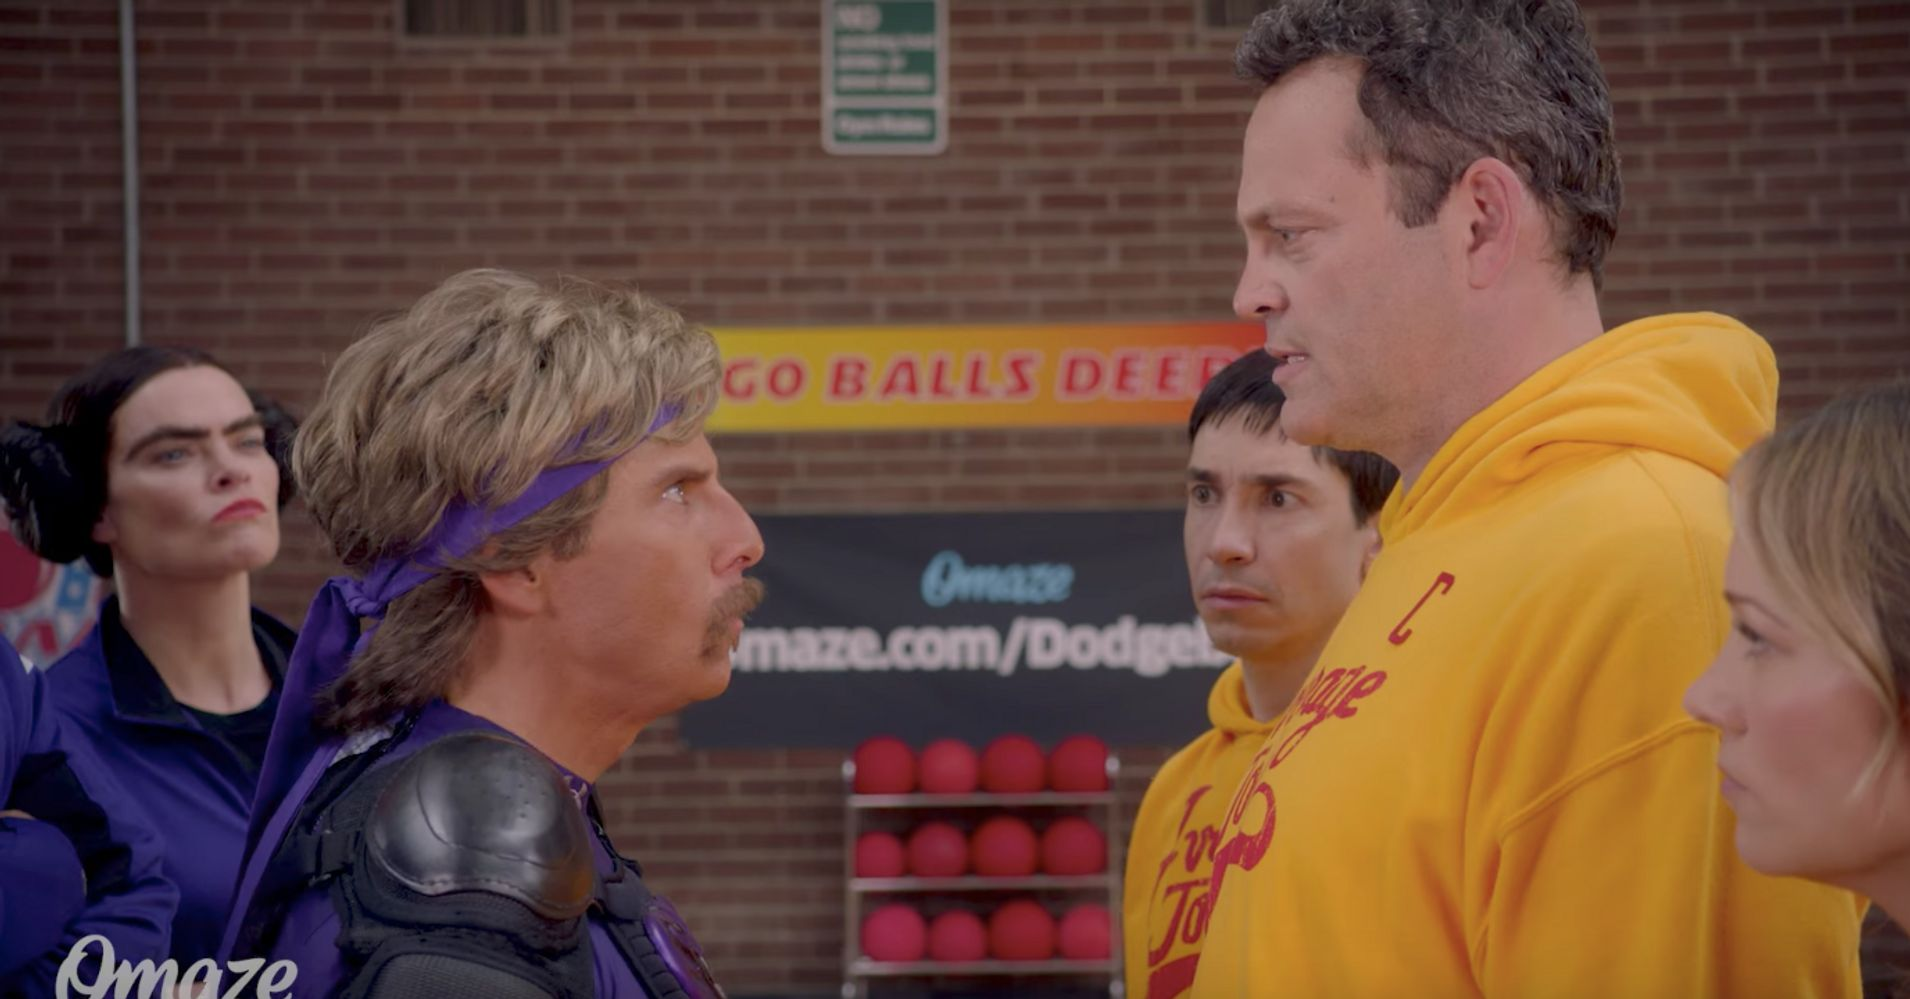 the dodgeball cast reunites for whats basically